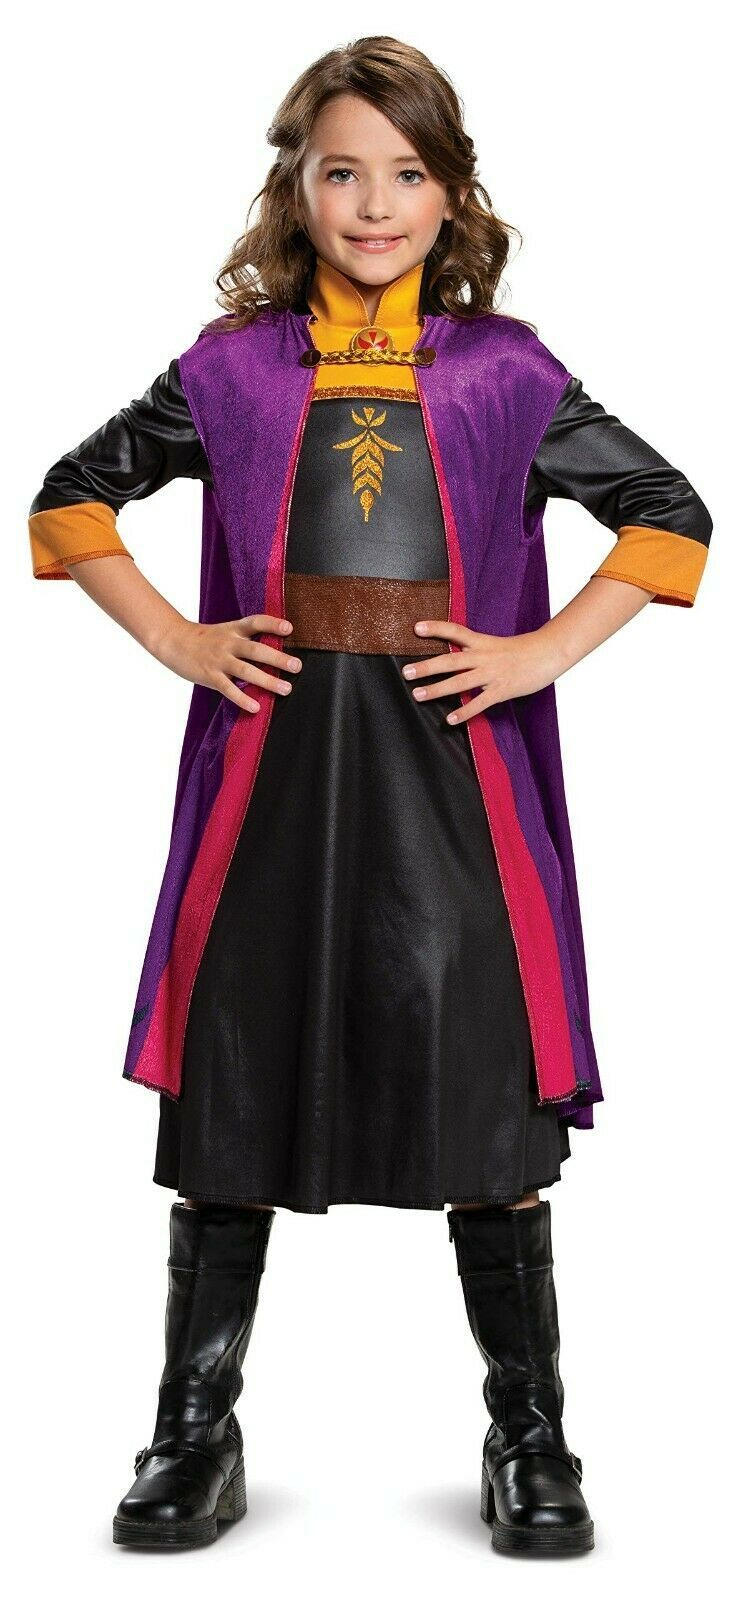 Disguise Frozen II Anna Deluxe Bambino Costume Halloween XS / EP / Tp (3T-4T)